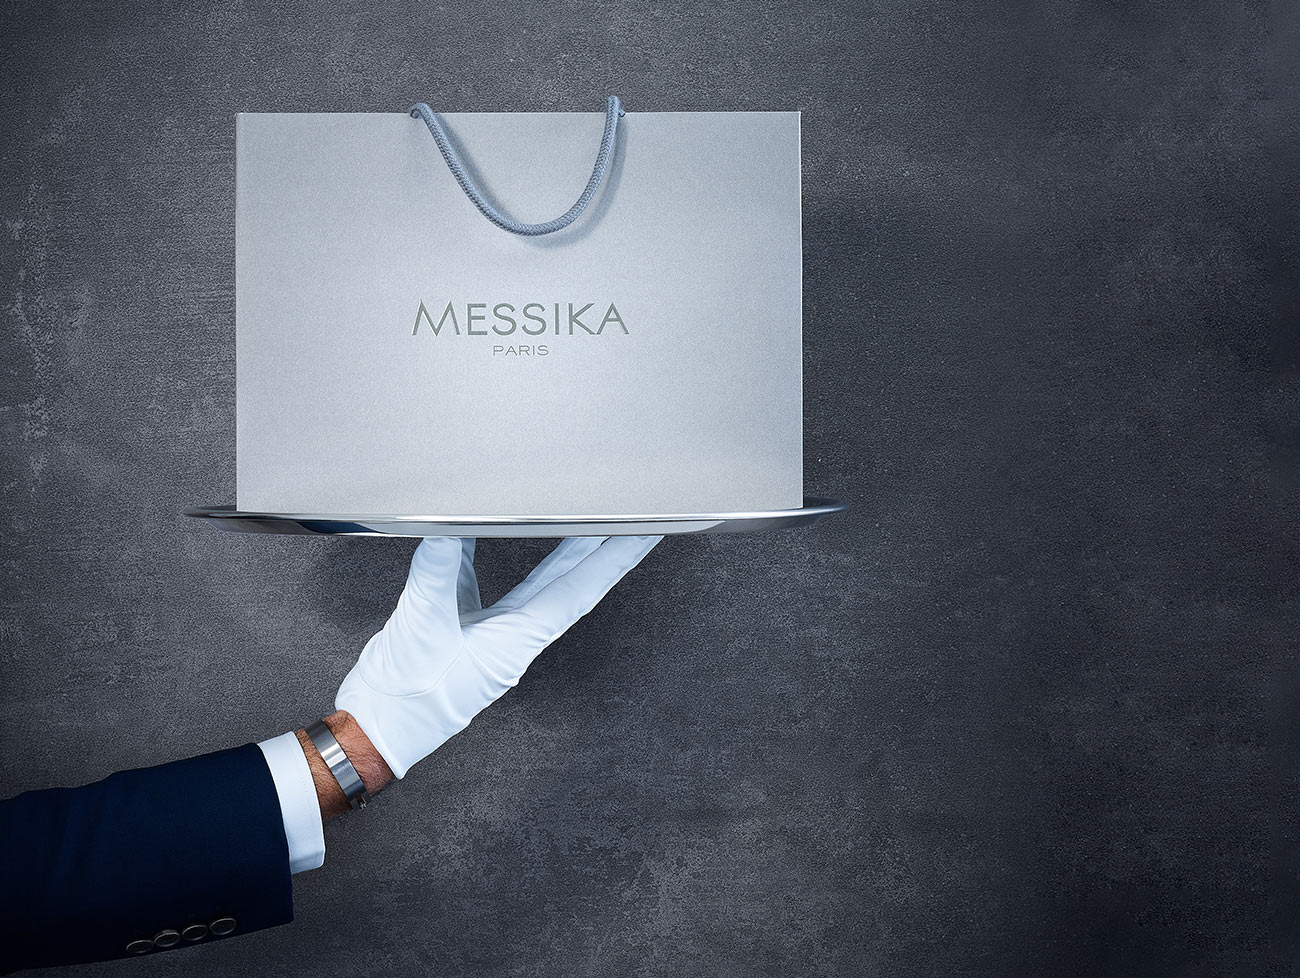 Messika's luxury jewelry Maison : the art of giving